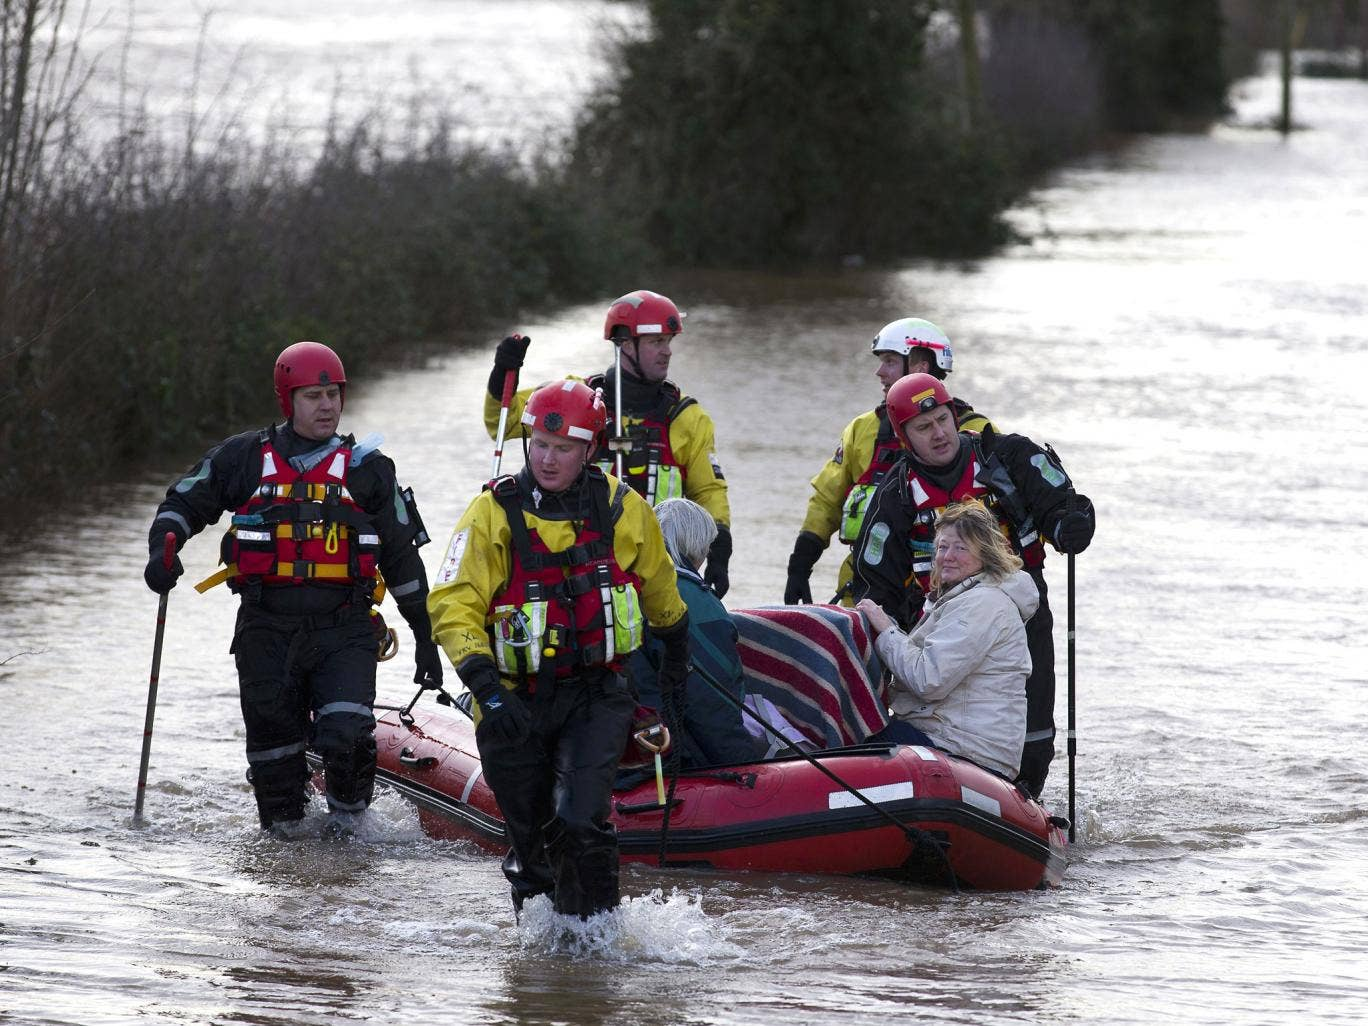 Devon and Somerset Fire and rescue service evacuate two women and two cats in baskets through flood waters in Burrowbridge